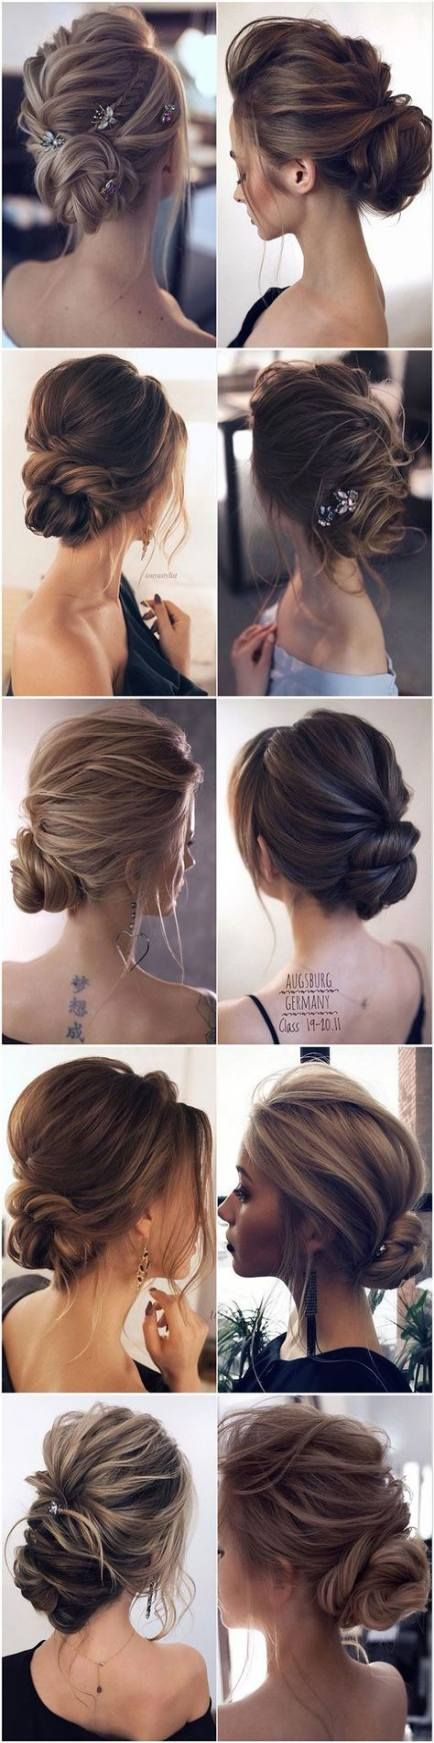 Bridal Hairstyles Updo Messy Brides 44 Best Ideas